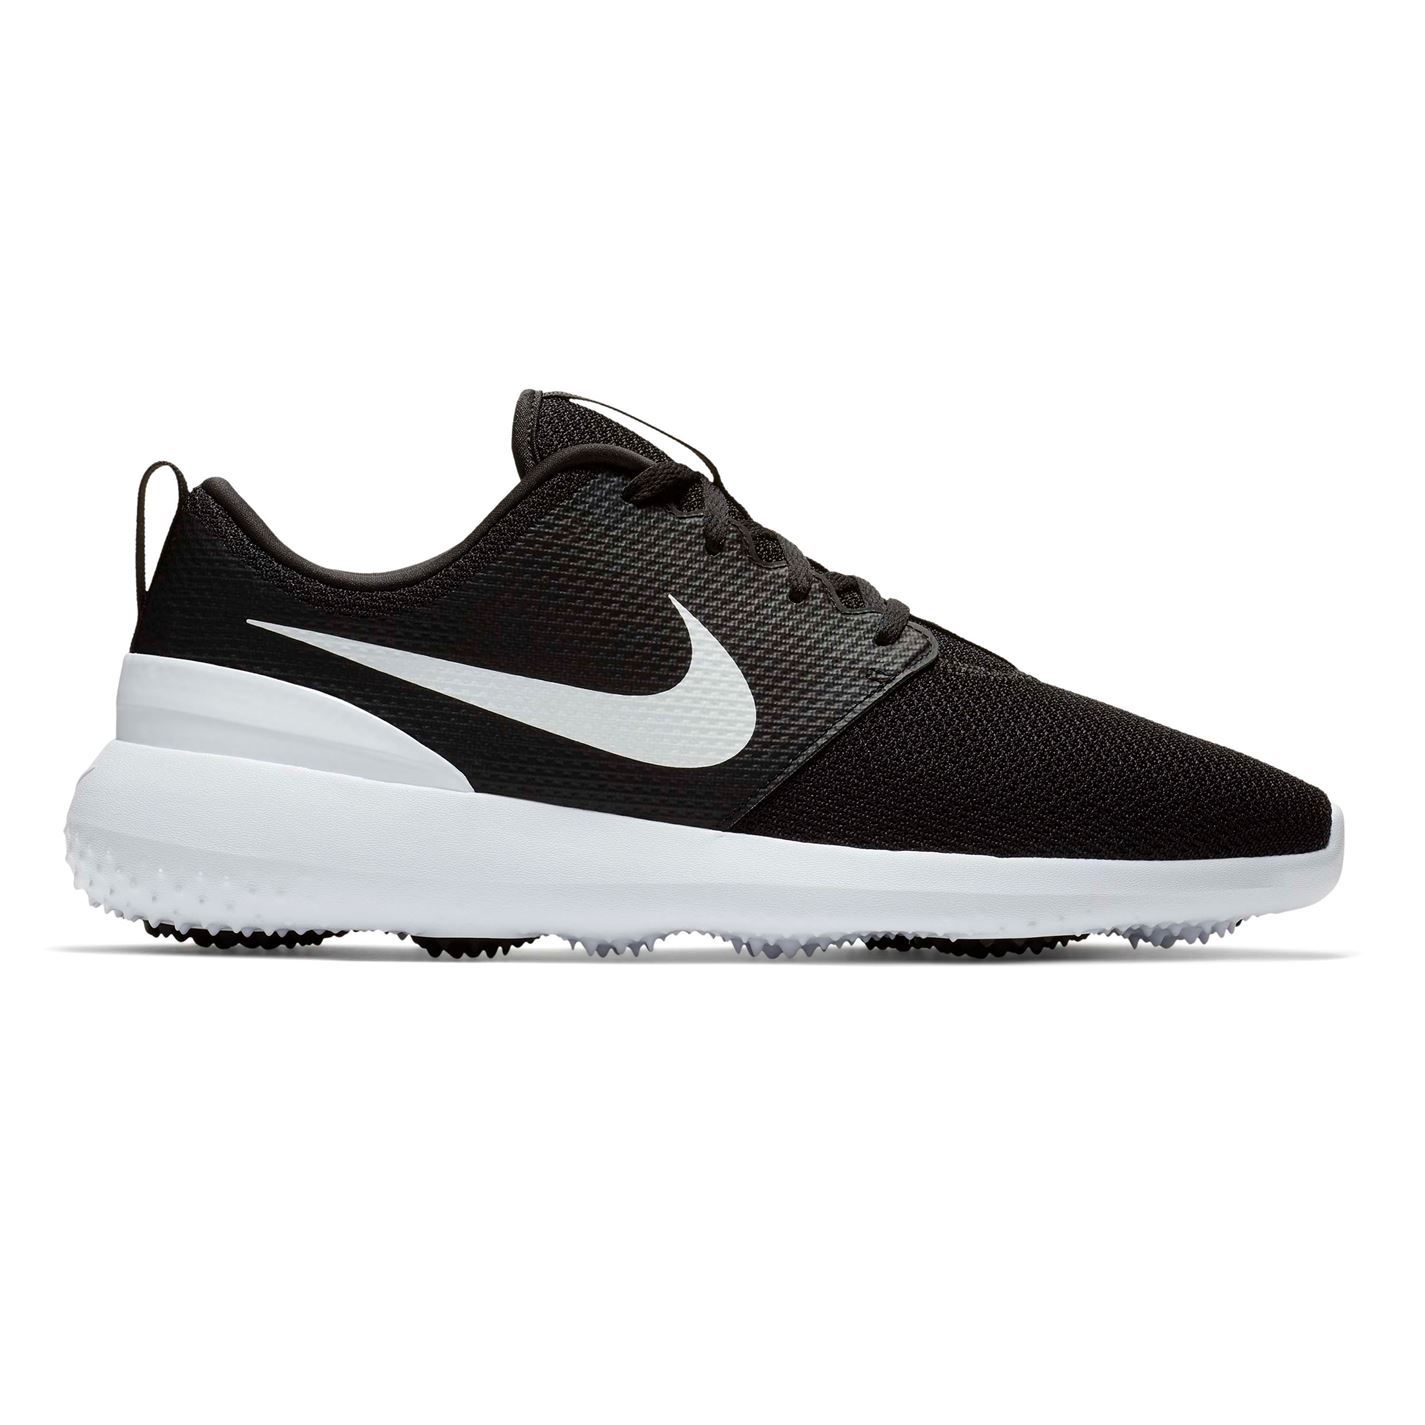 new concept e0a89 47560 ... Nike Roshe Golf Shoes Mens Spikeless Footwear